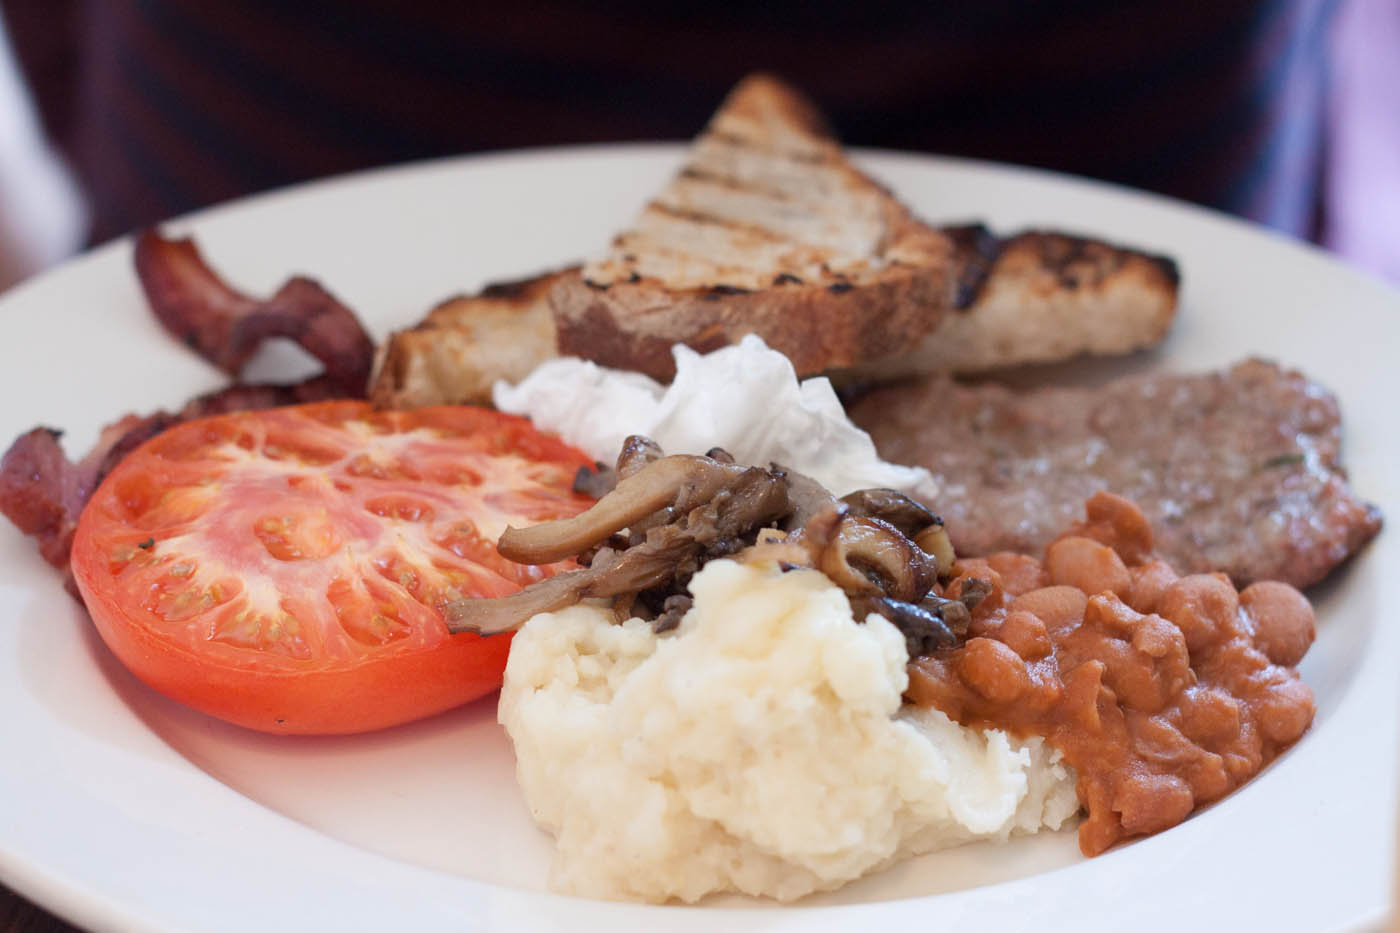 Full Homa Brunch: Dry Cured Bacon, Sardinian Sausage, Roasted Tomato,  Potato Puree with Sauté Mushroom, Baked Beans & Toasted Sourdough